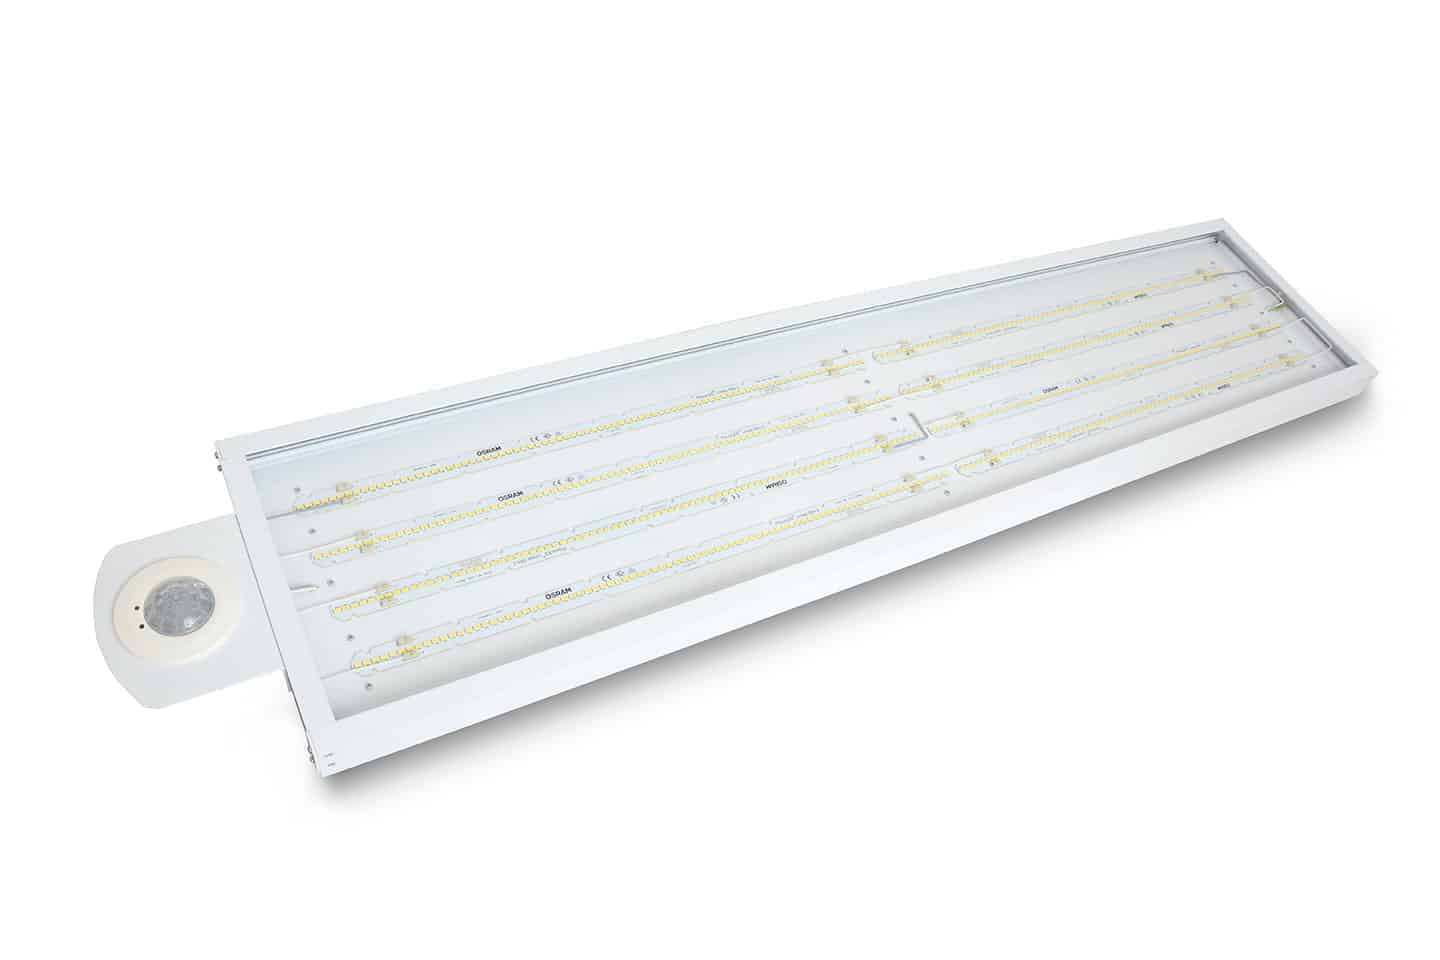 Pegasus LED High Bay gives high efficacy and up to 80% energy saving